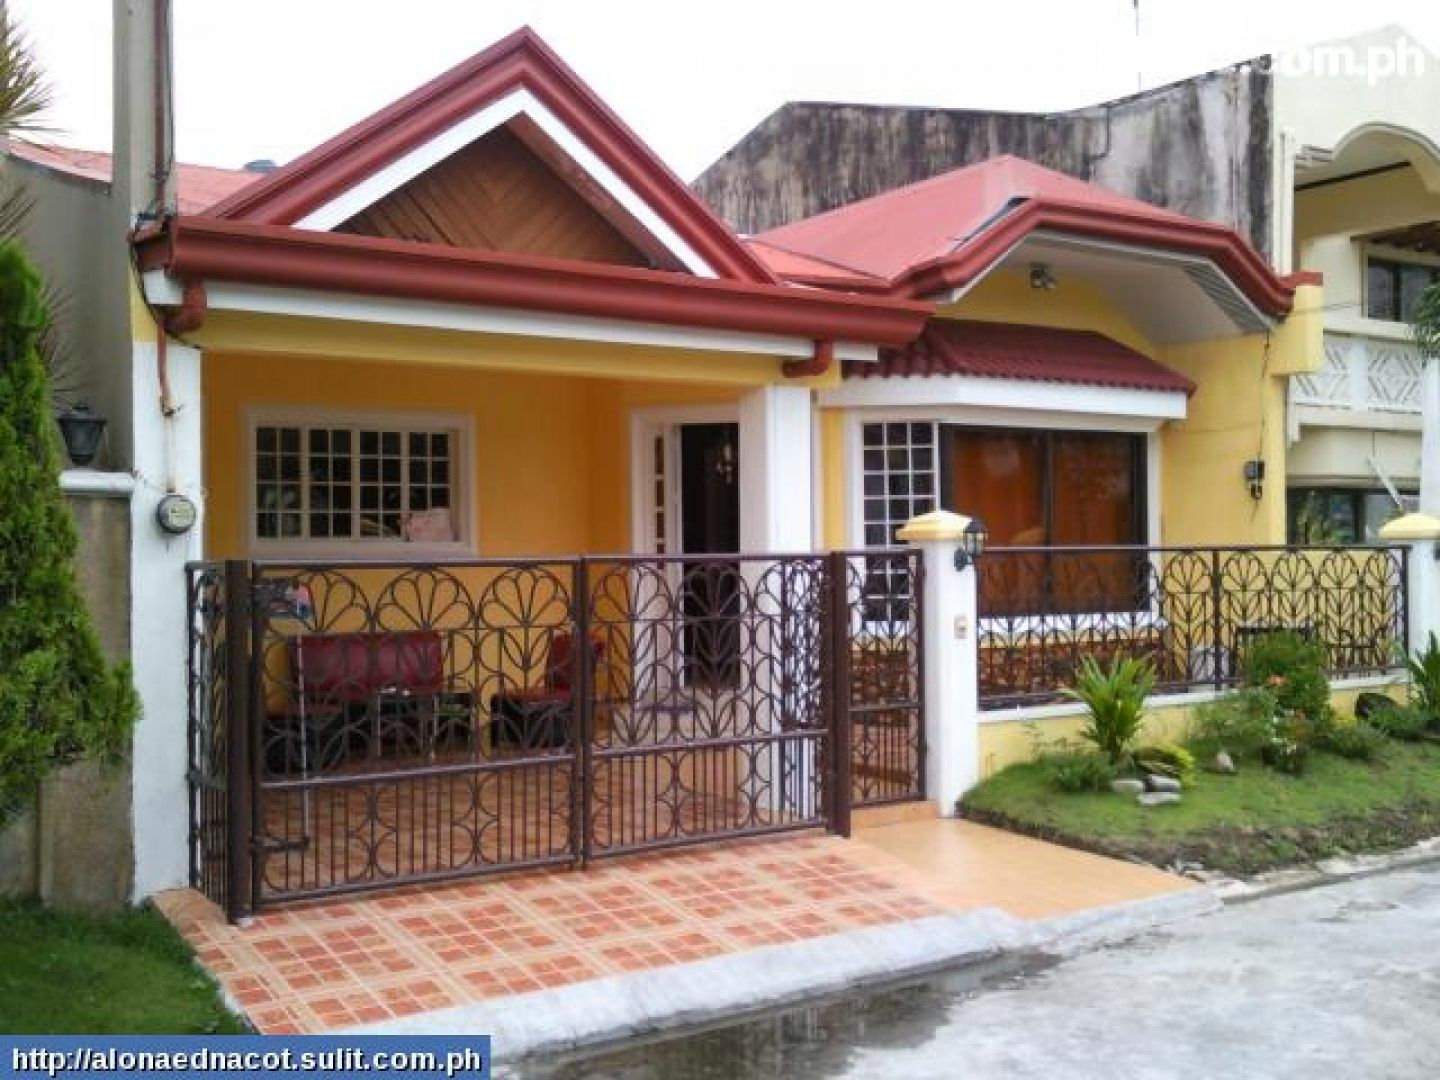 floor plans 3 bedroom bungalow house plans philippines 3 bedroom floor plans 3 bedroom bungalow house plans philippines 3 bedroom